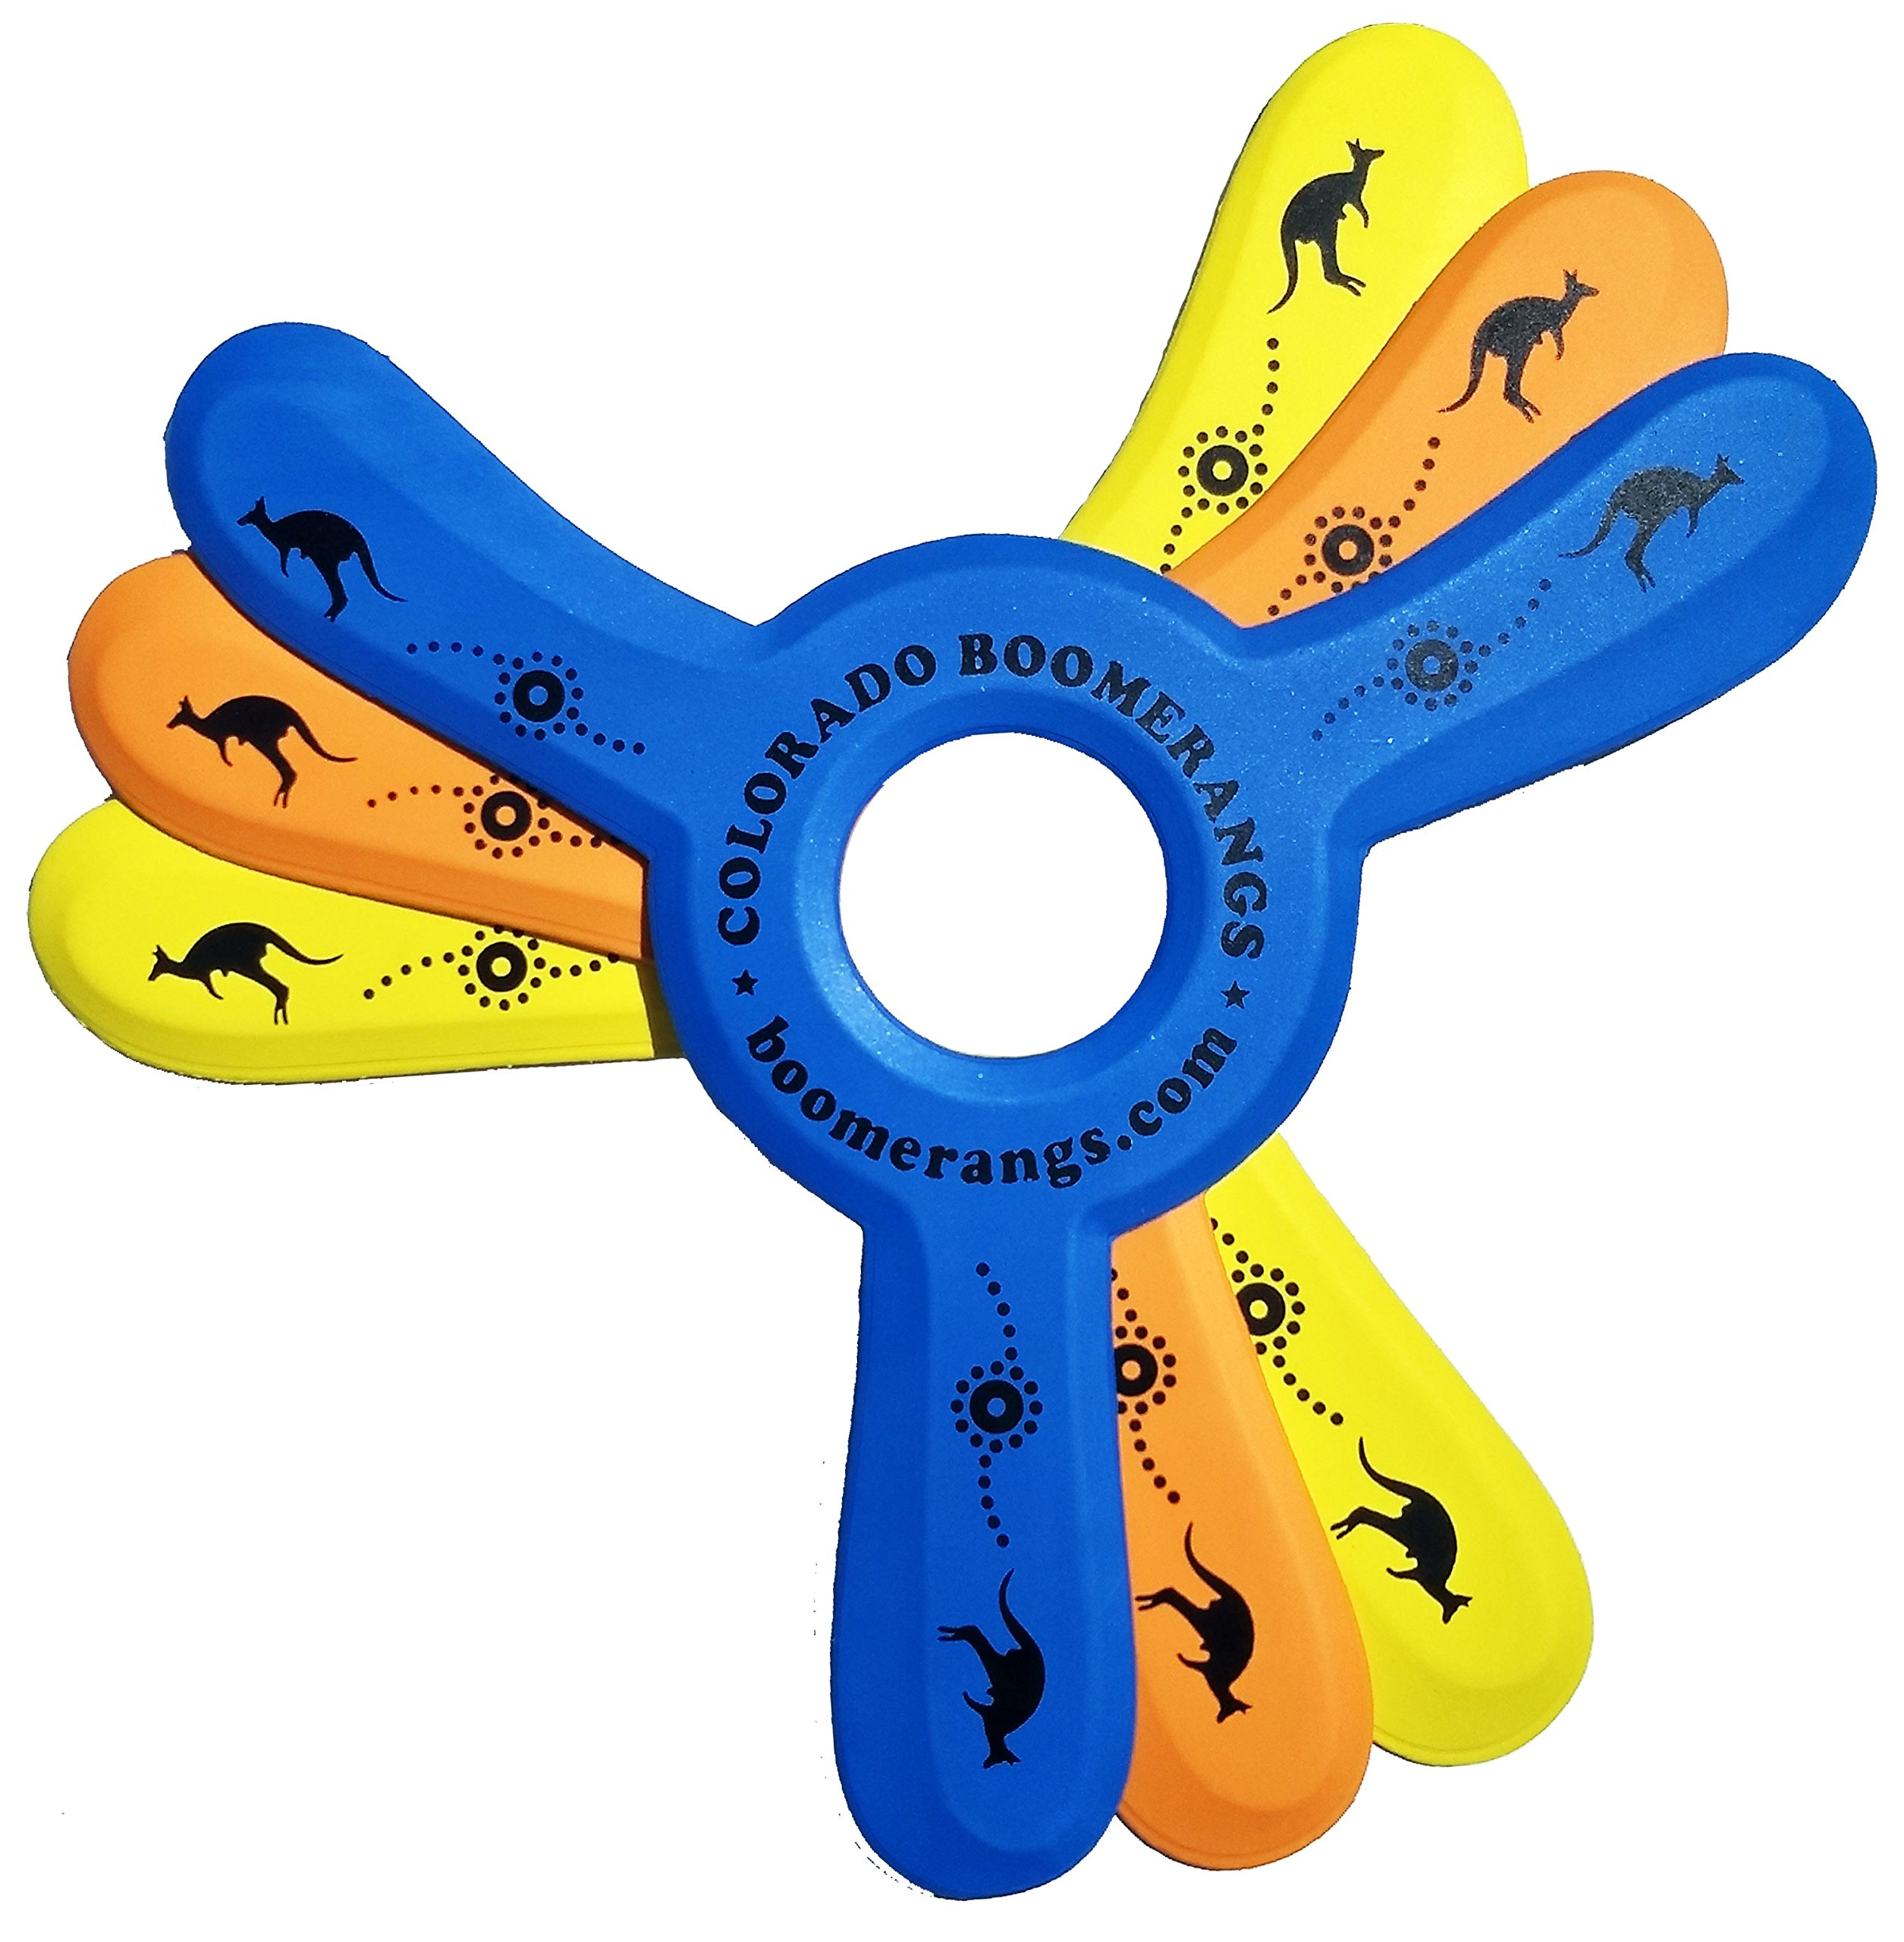 Colorado Boomerangs Kanga Boomerang 3 Pack, 3 Kids Boomerangs from